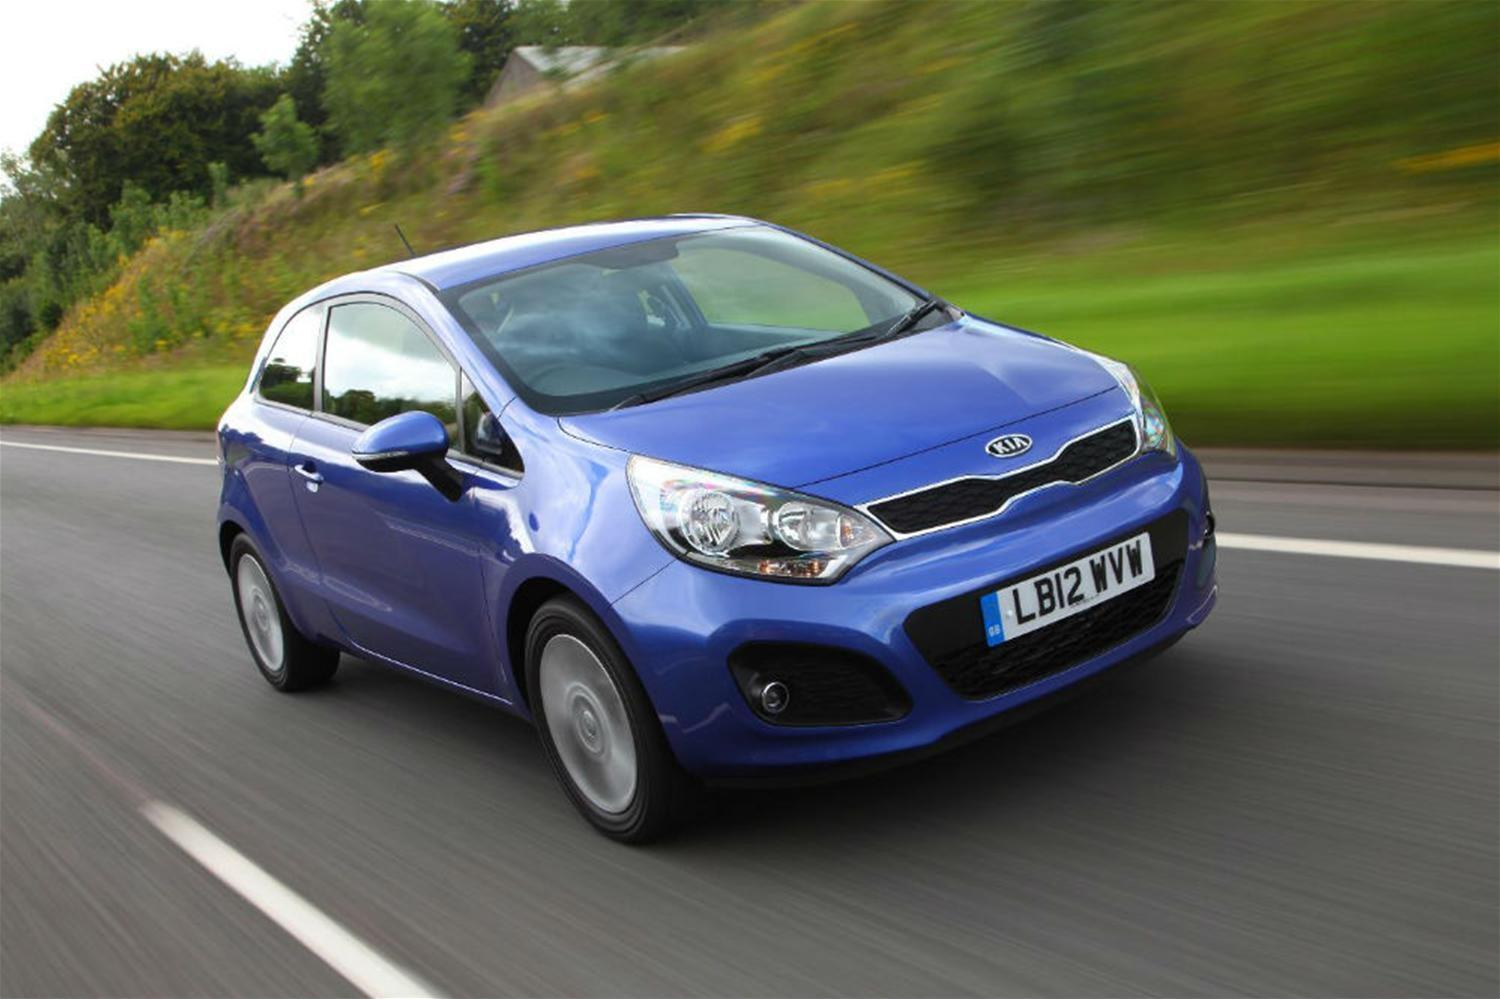 Kia offering one year insurance at only £99